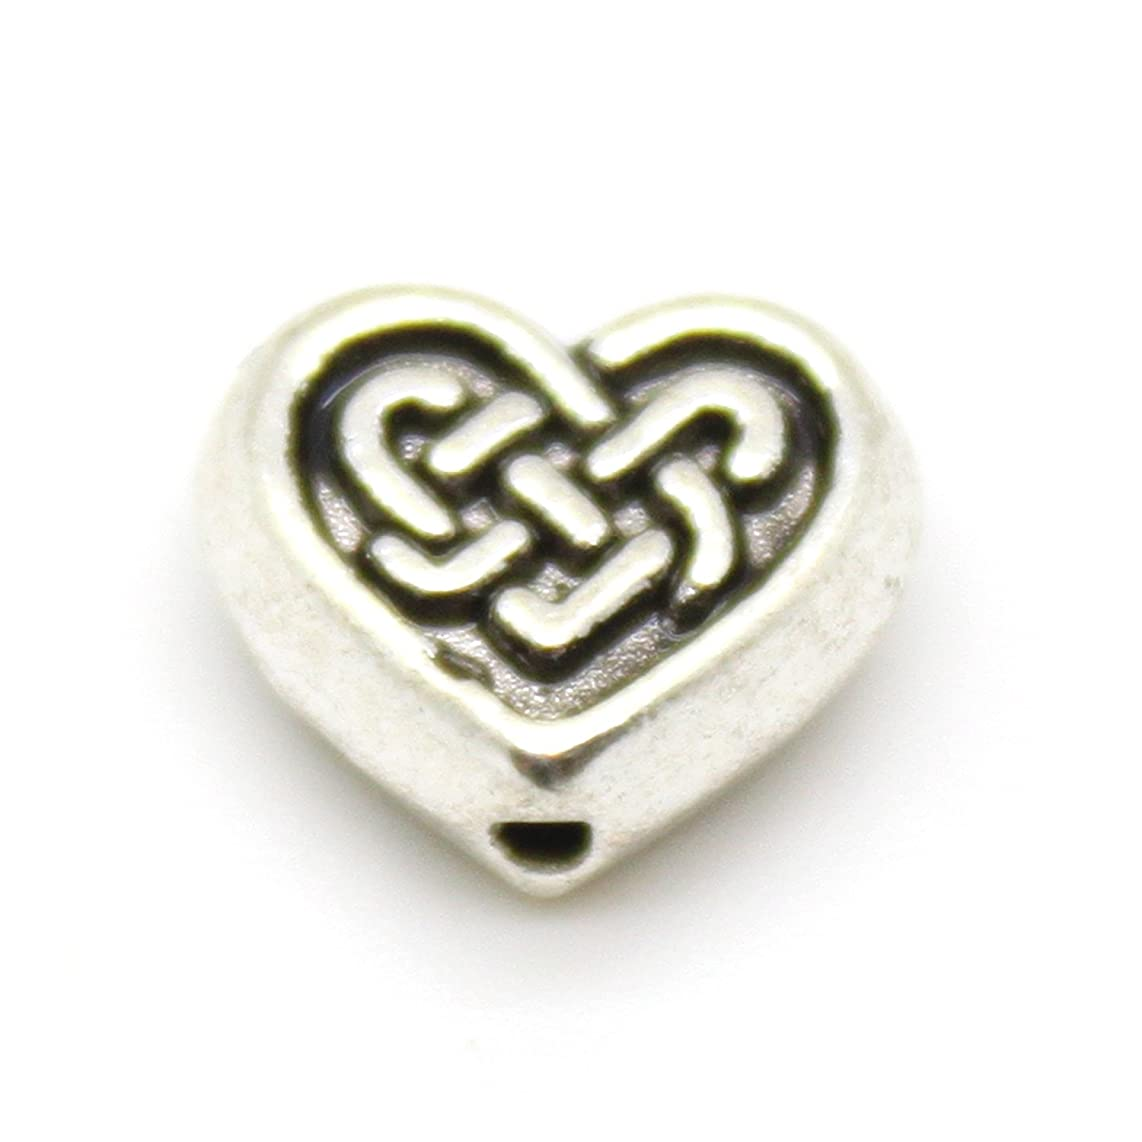 10 Silver Alloy Celtic Heart Beads